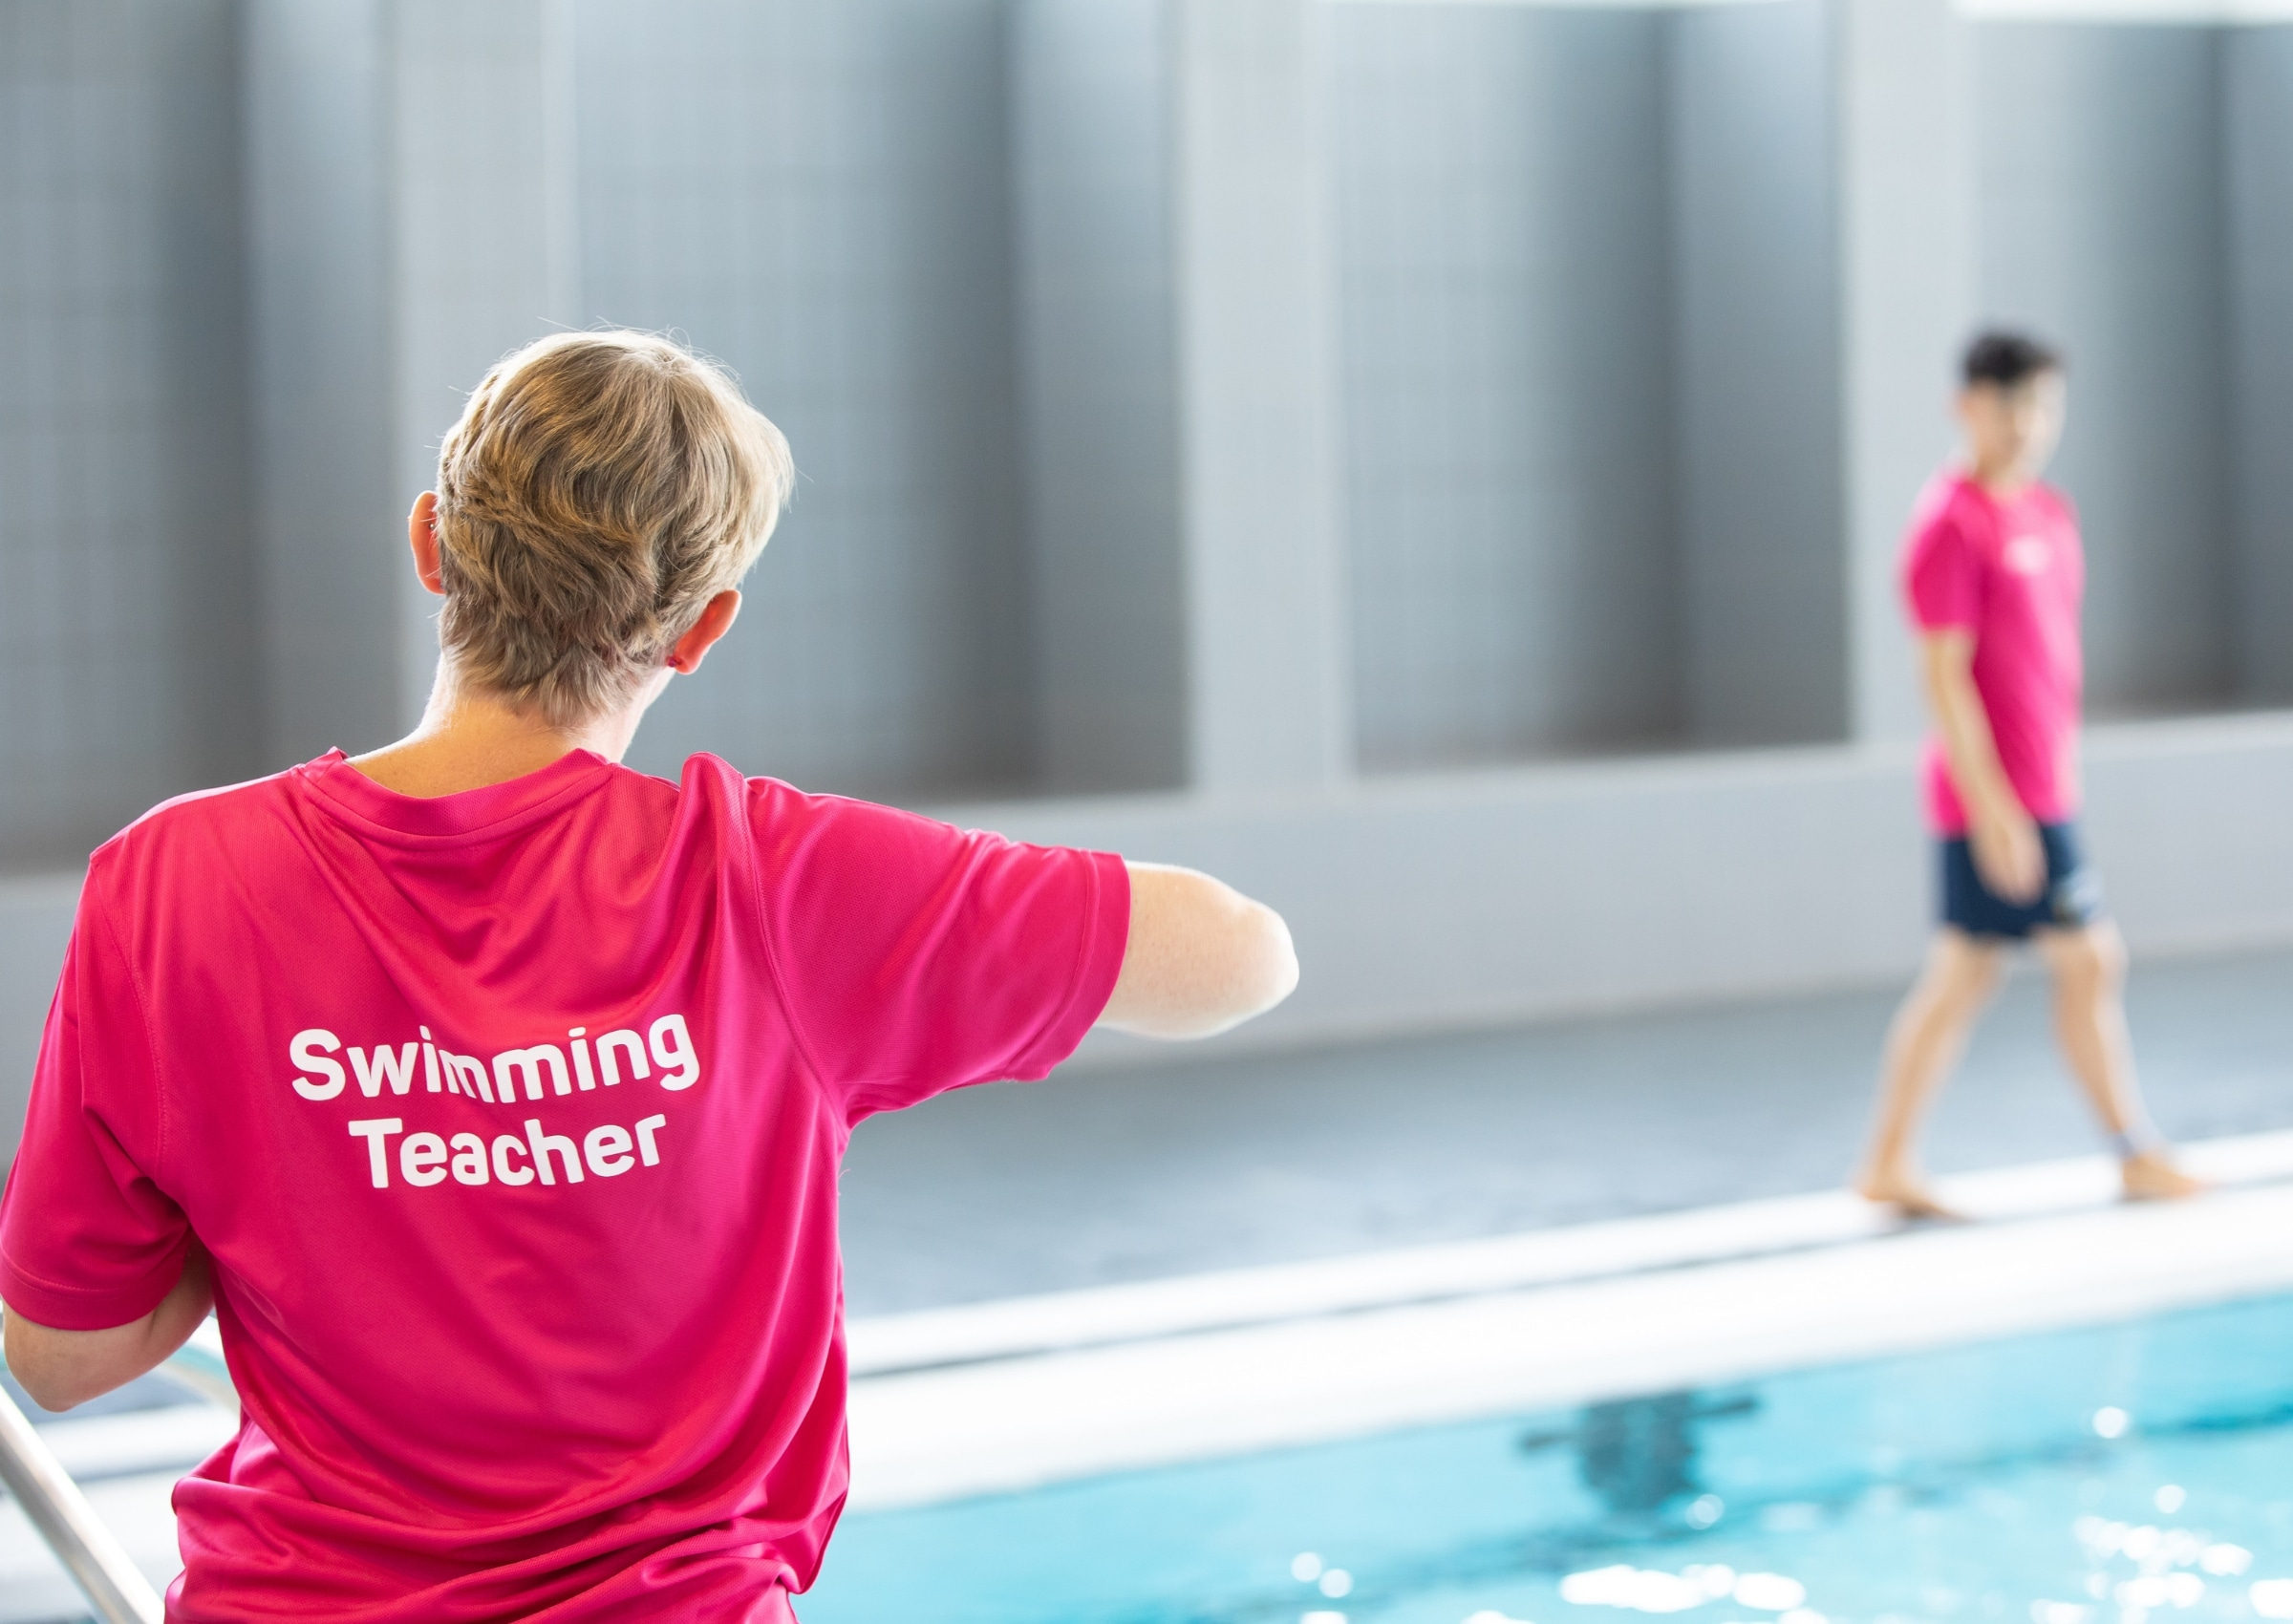 Ealing, Brent and Harrow Swimming Teacher Recruitment Academy